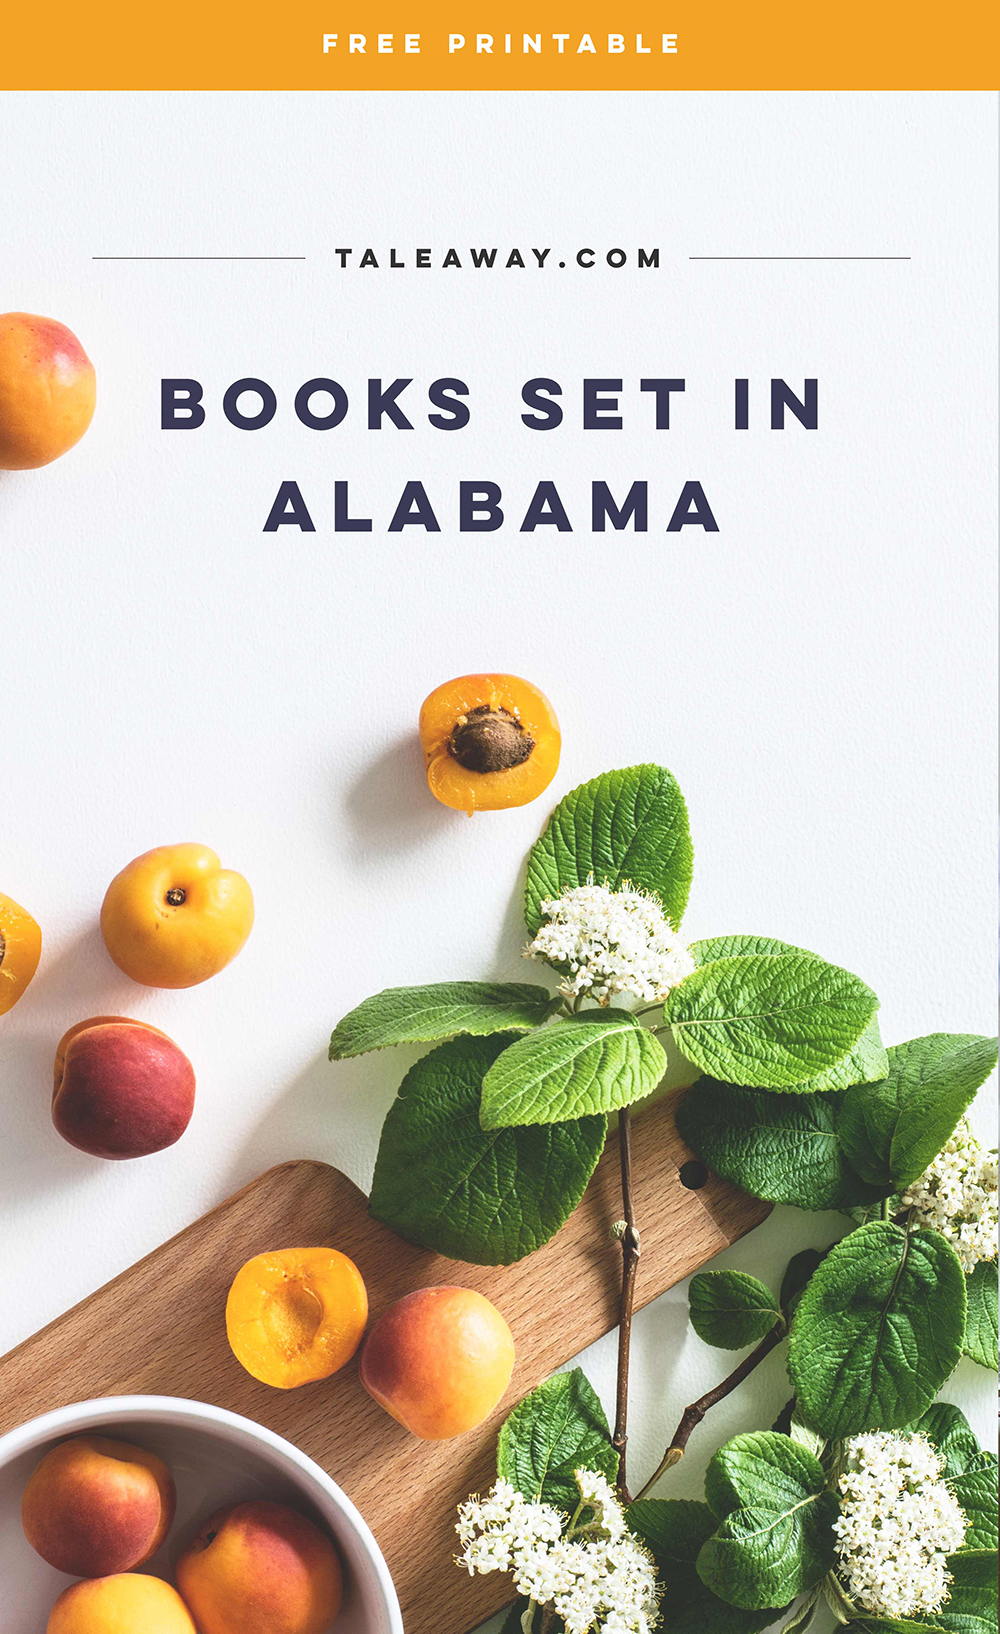 Books Set In Alabama. Visit www.taleway.com to find books set around the world. alabama books, alabama novels, alabama travel, alabama authors, books from alabama, books about alabama, alabama literature, alabama history, books from every state, books from each state, alabama adventures, alabama road trip, alabama trip, alabama vacation, books and travel, travel reading list, reading list, reading challenge, books to read, books around the world, american books, usa books, us books, book challenge